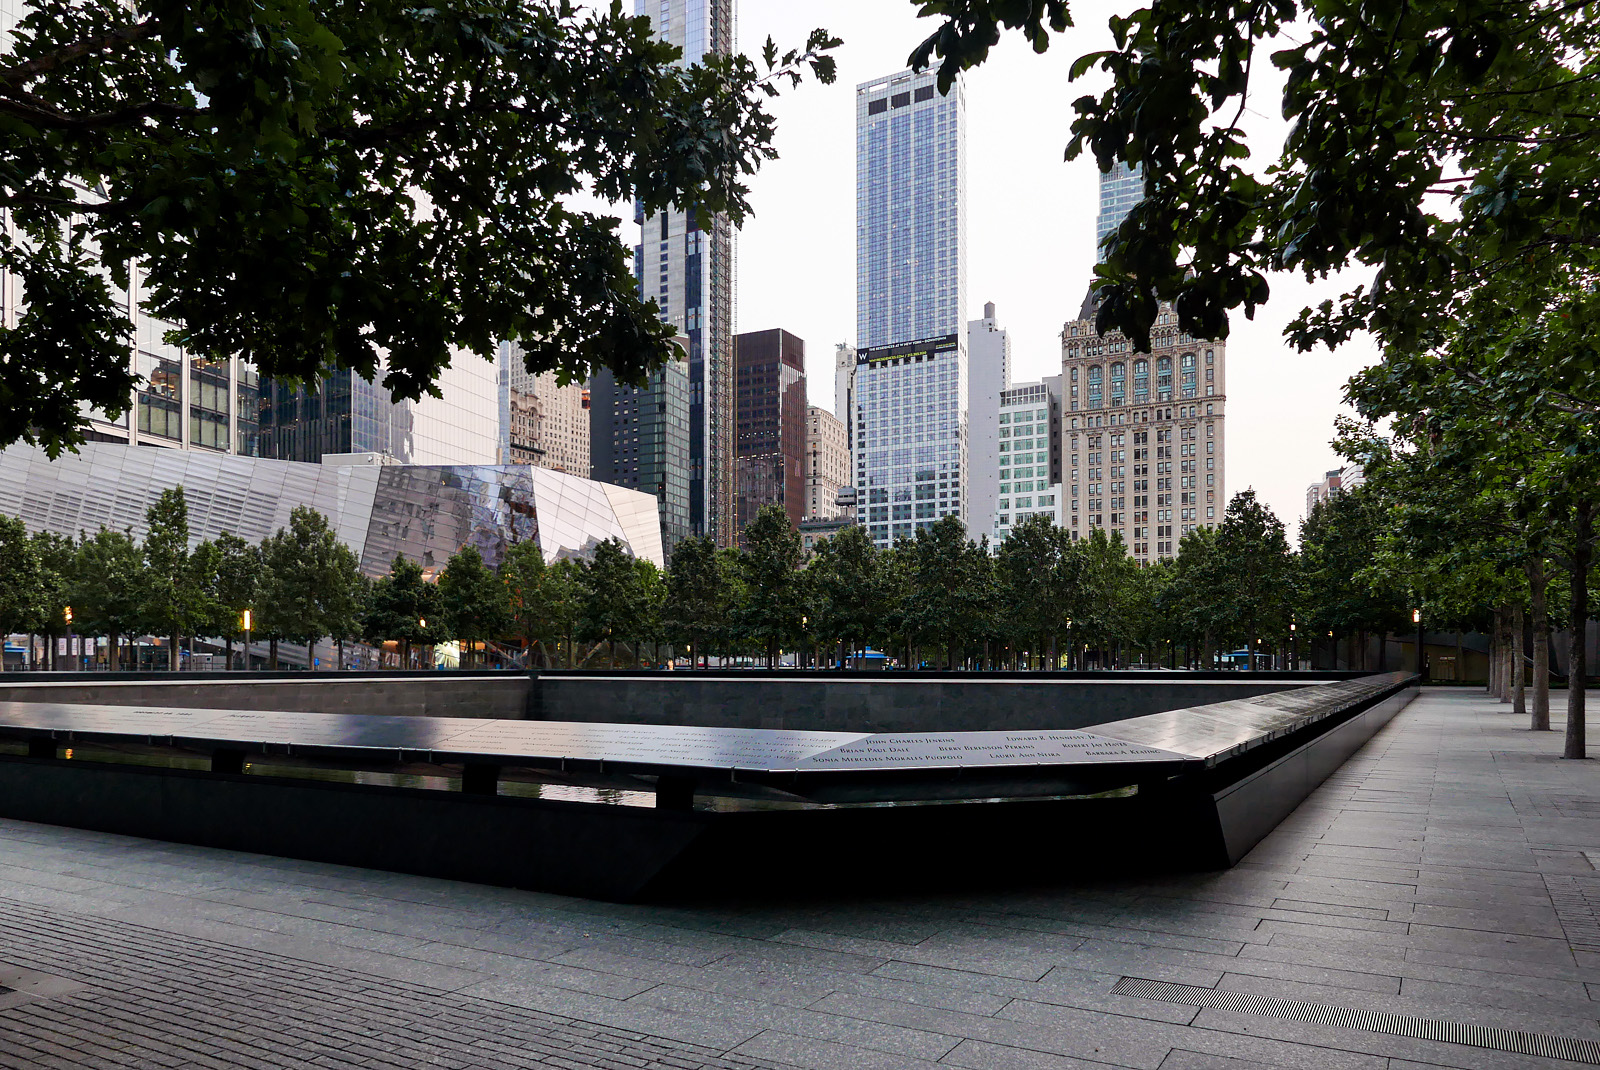 September 11 Memorial - Downtown Manhattan.